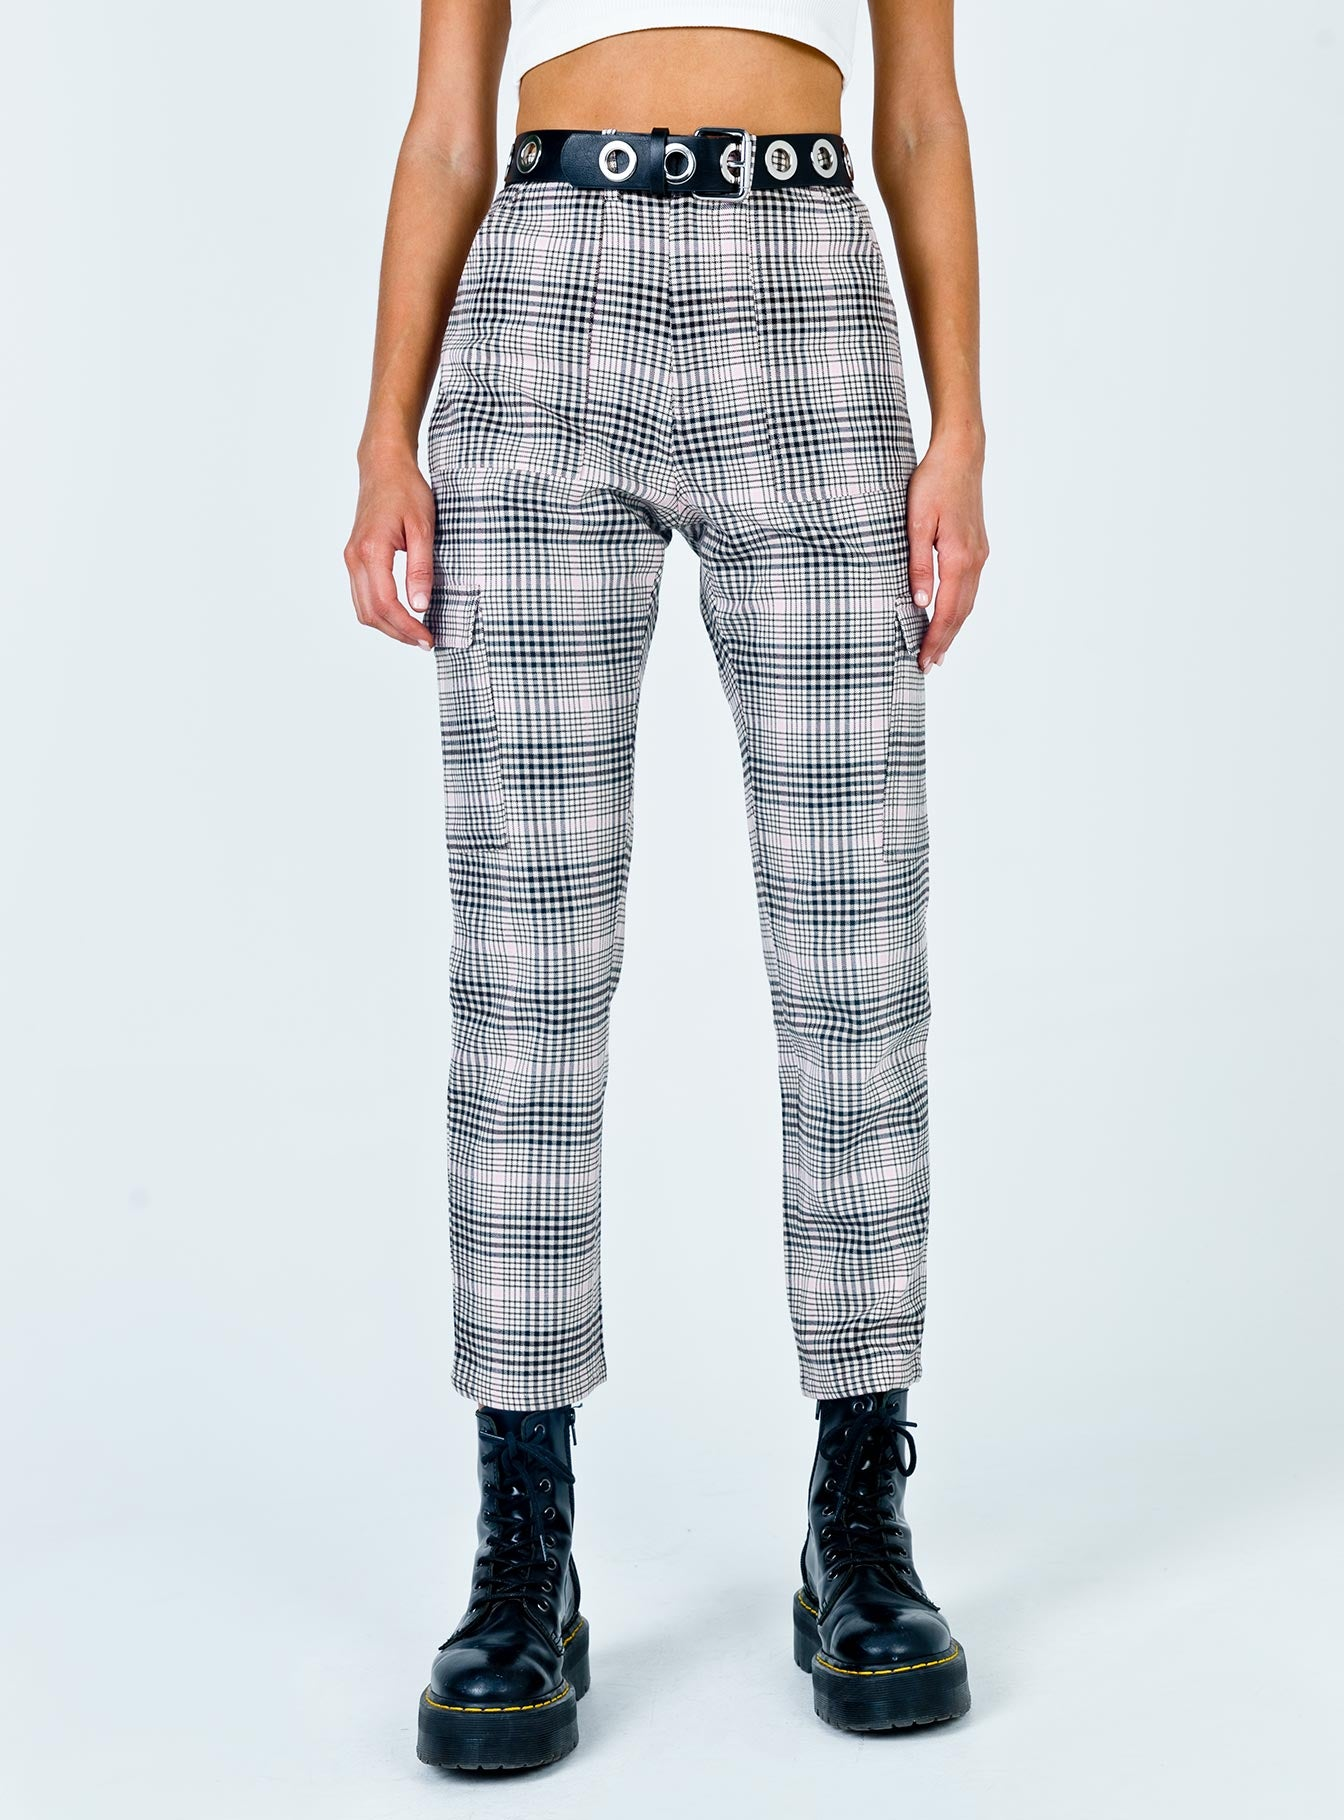 TWIIN Pace Yourself Pant Multi Grey